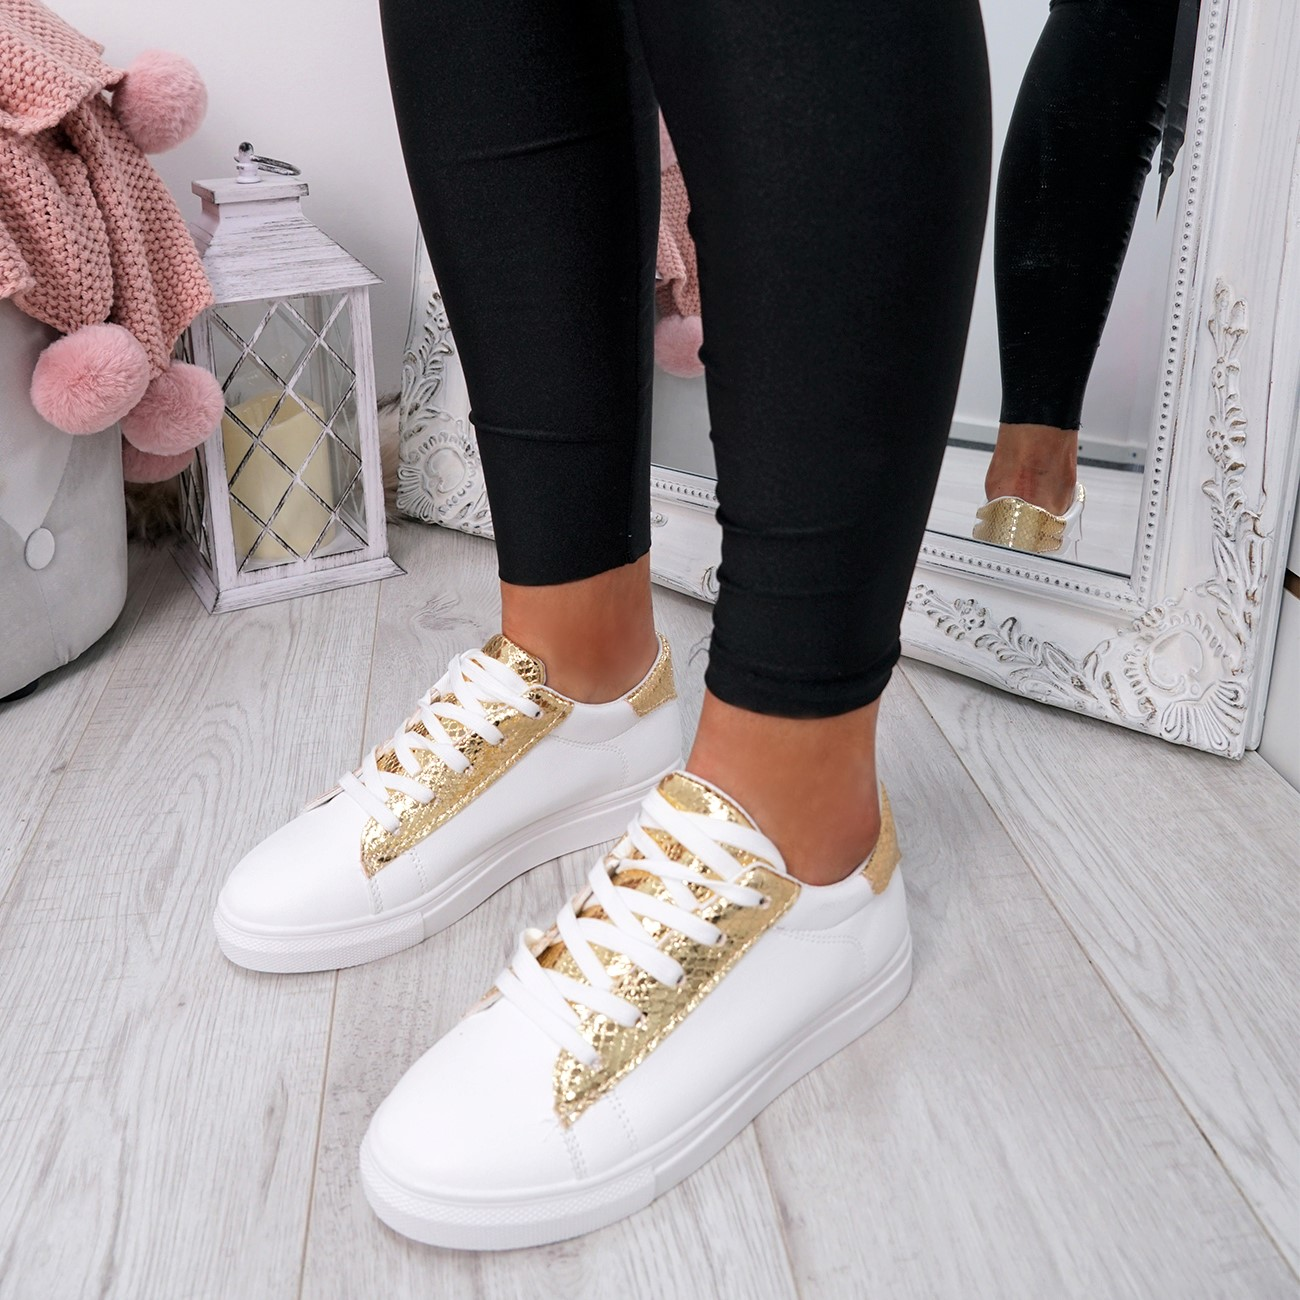 WOMENS-LADIES-SNAKE-SKIN-GLITTER-LACE-UP-TRAINERS-PLIMSOLLS-SNEAKERS-SHOES thumbnail 15